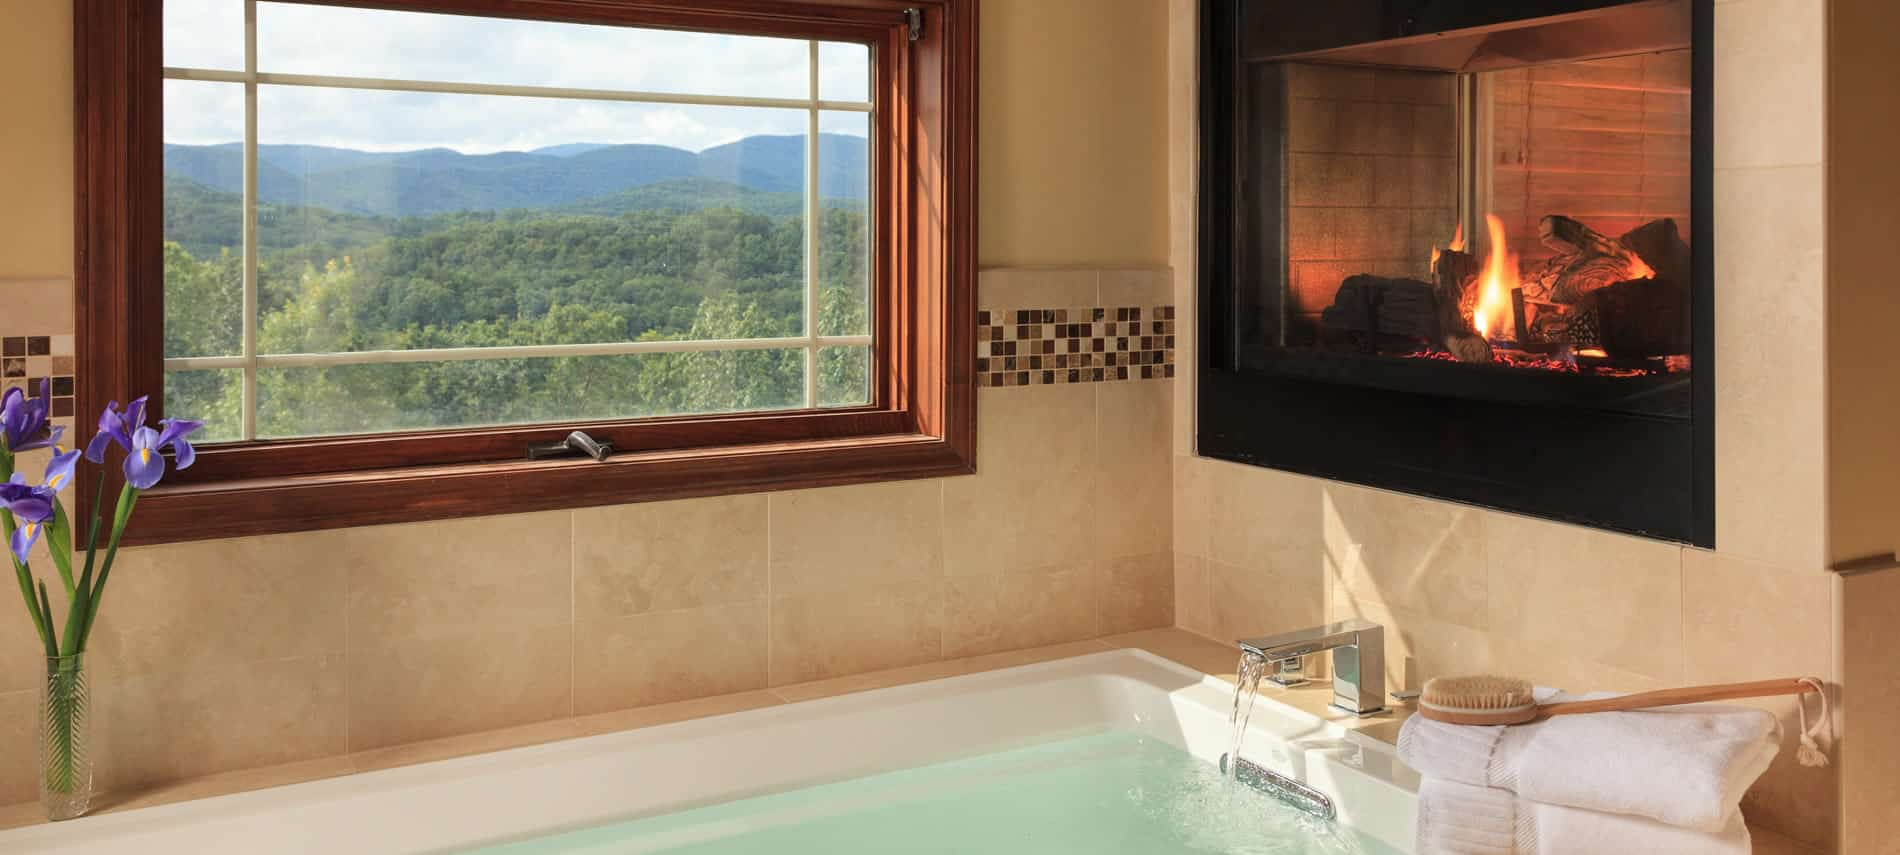 Romantic weekend getaways in helen ga cabins for couples for Great mini vacations for couples